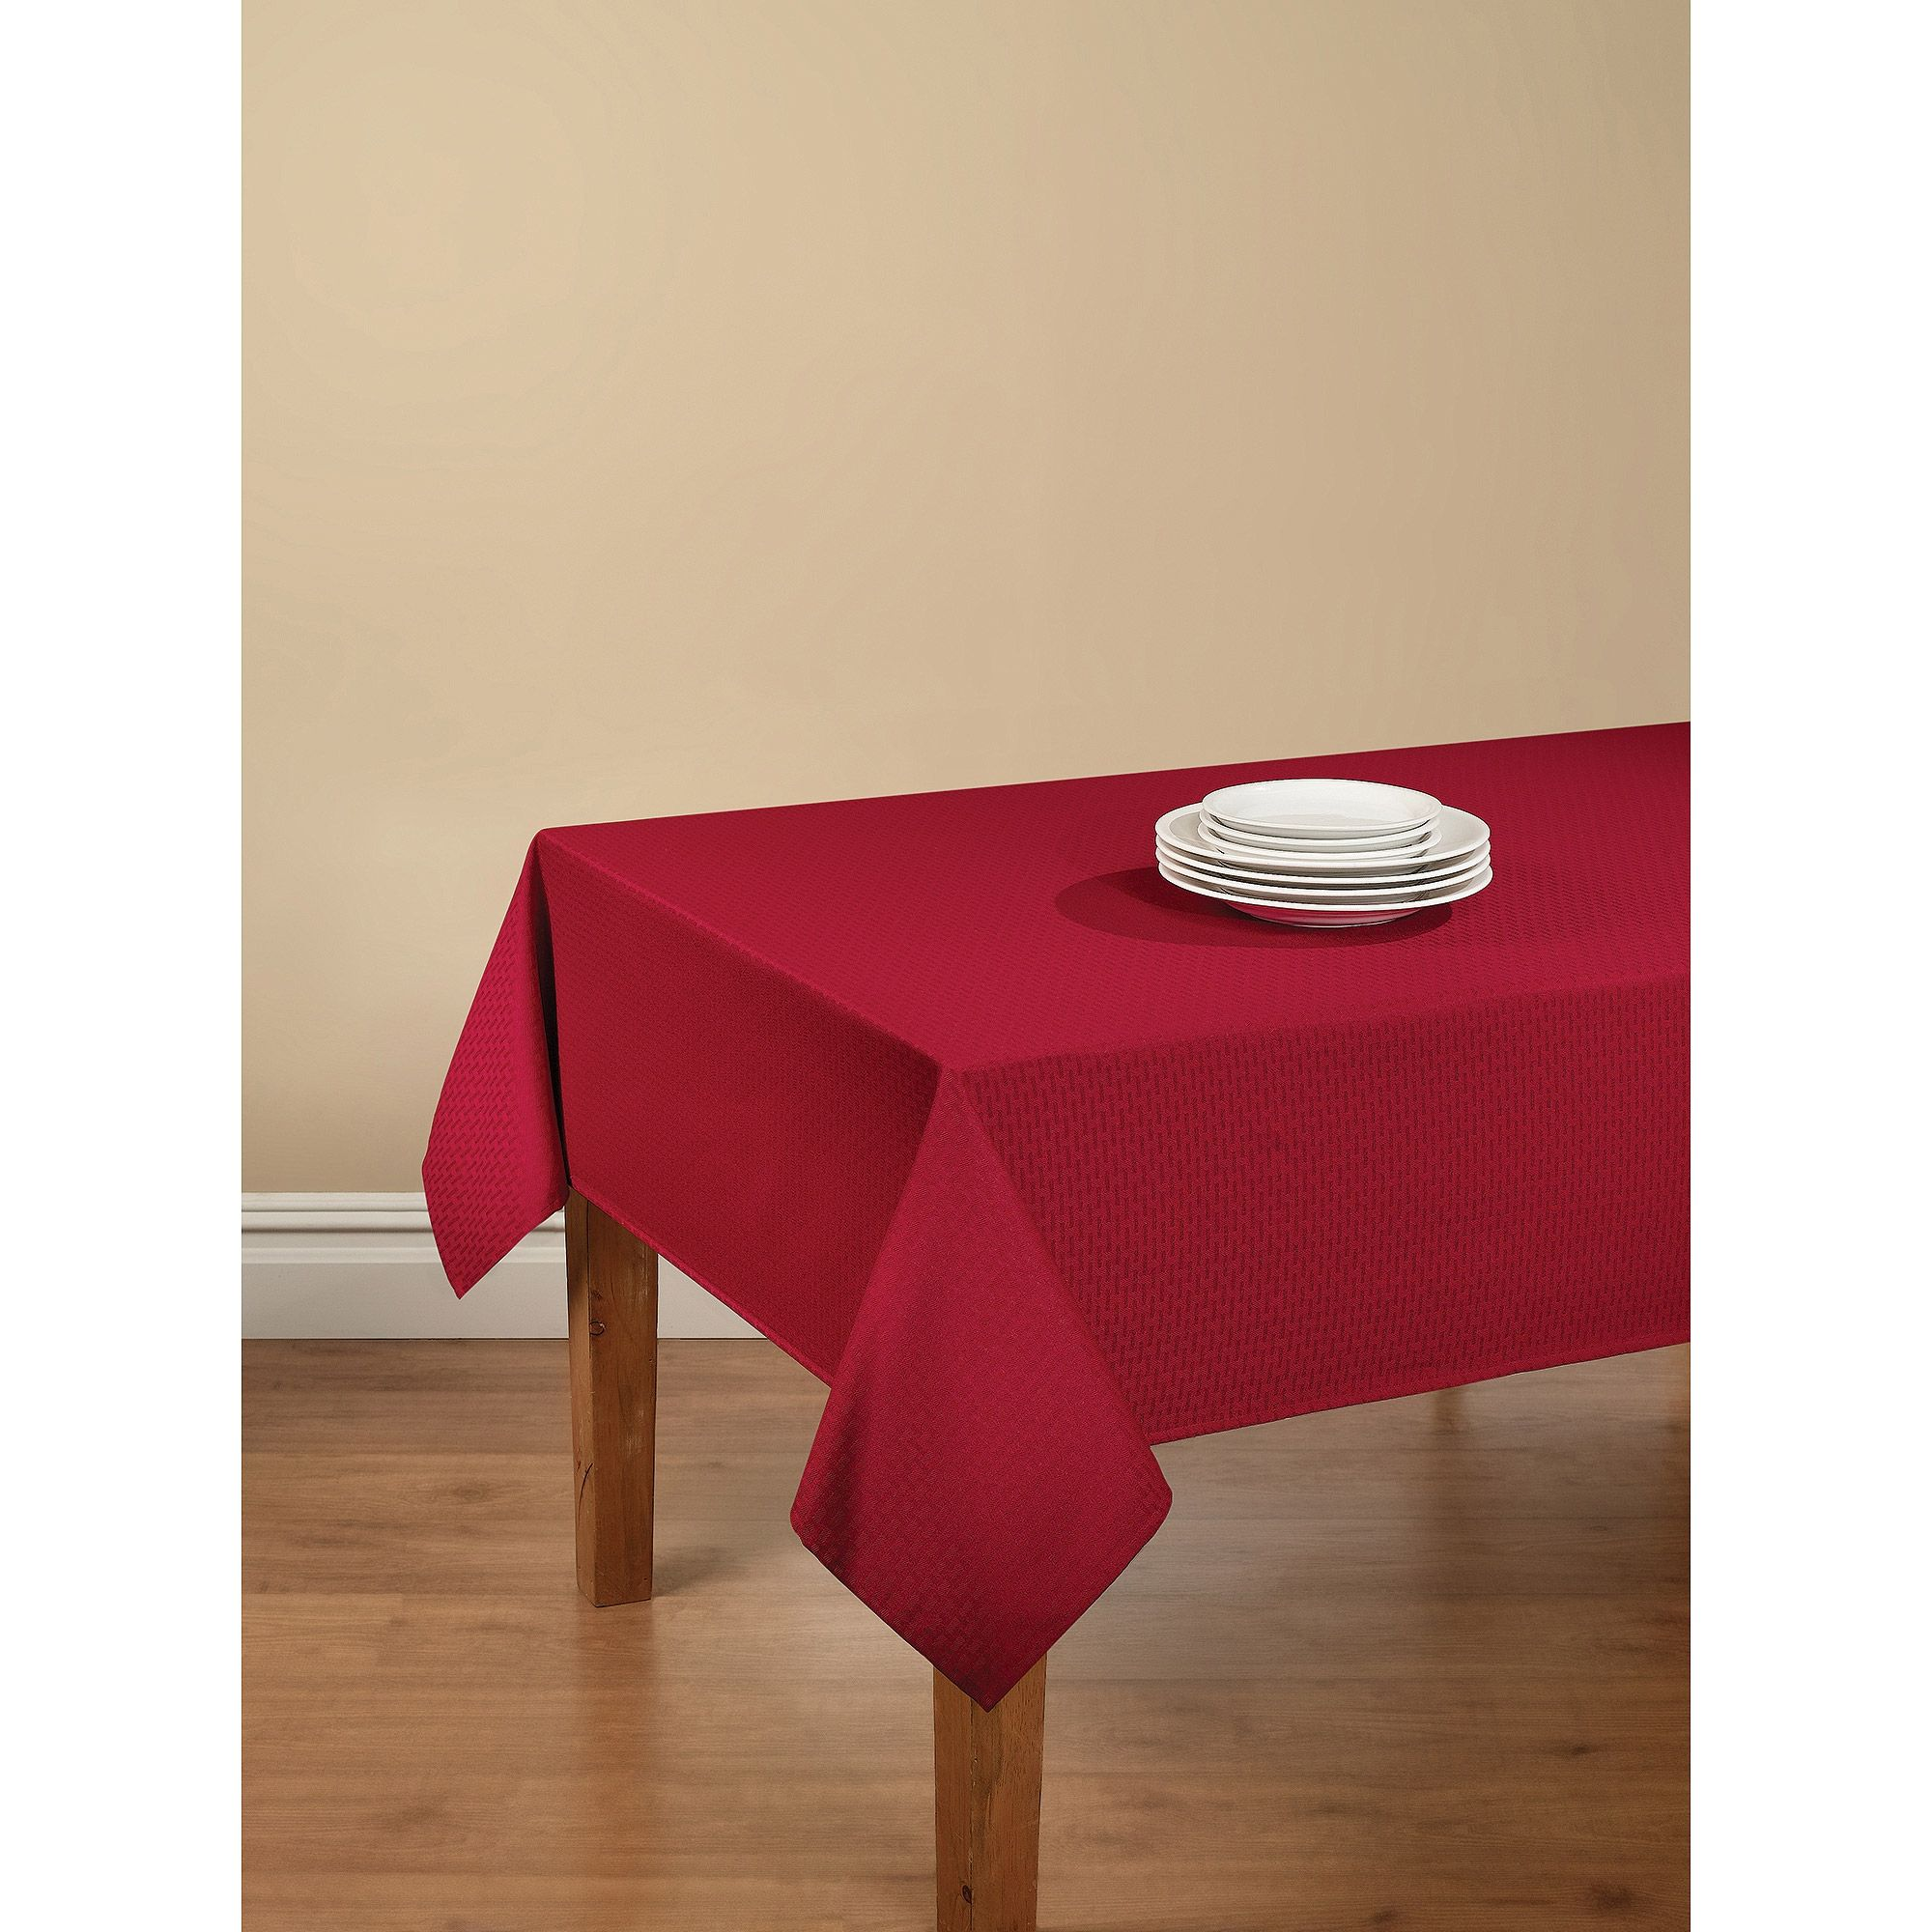 clear plastic round tablecloths argharts accent table cloth covers cover you looking for the perfect dining really into that new apartment rented metal clock folding hairpin legs